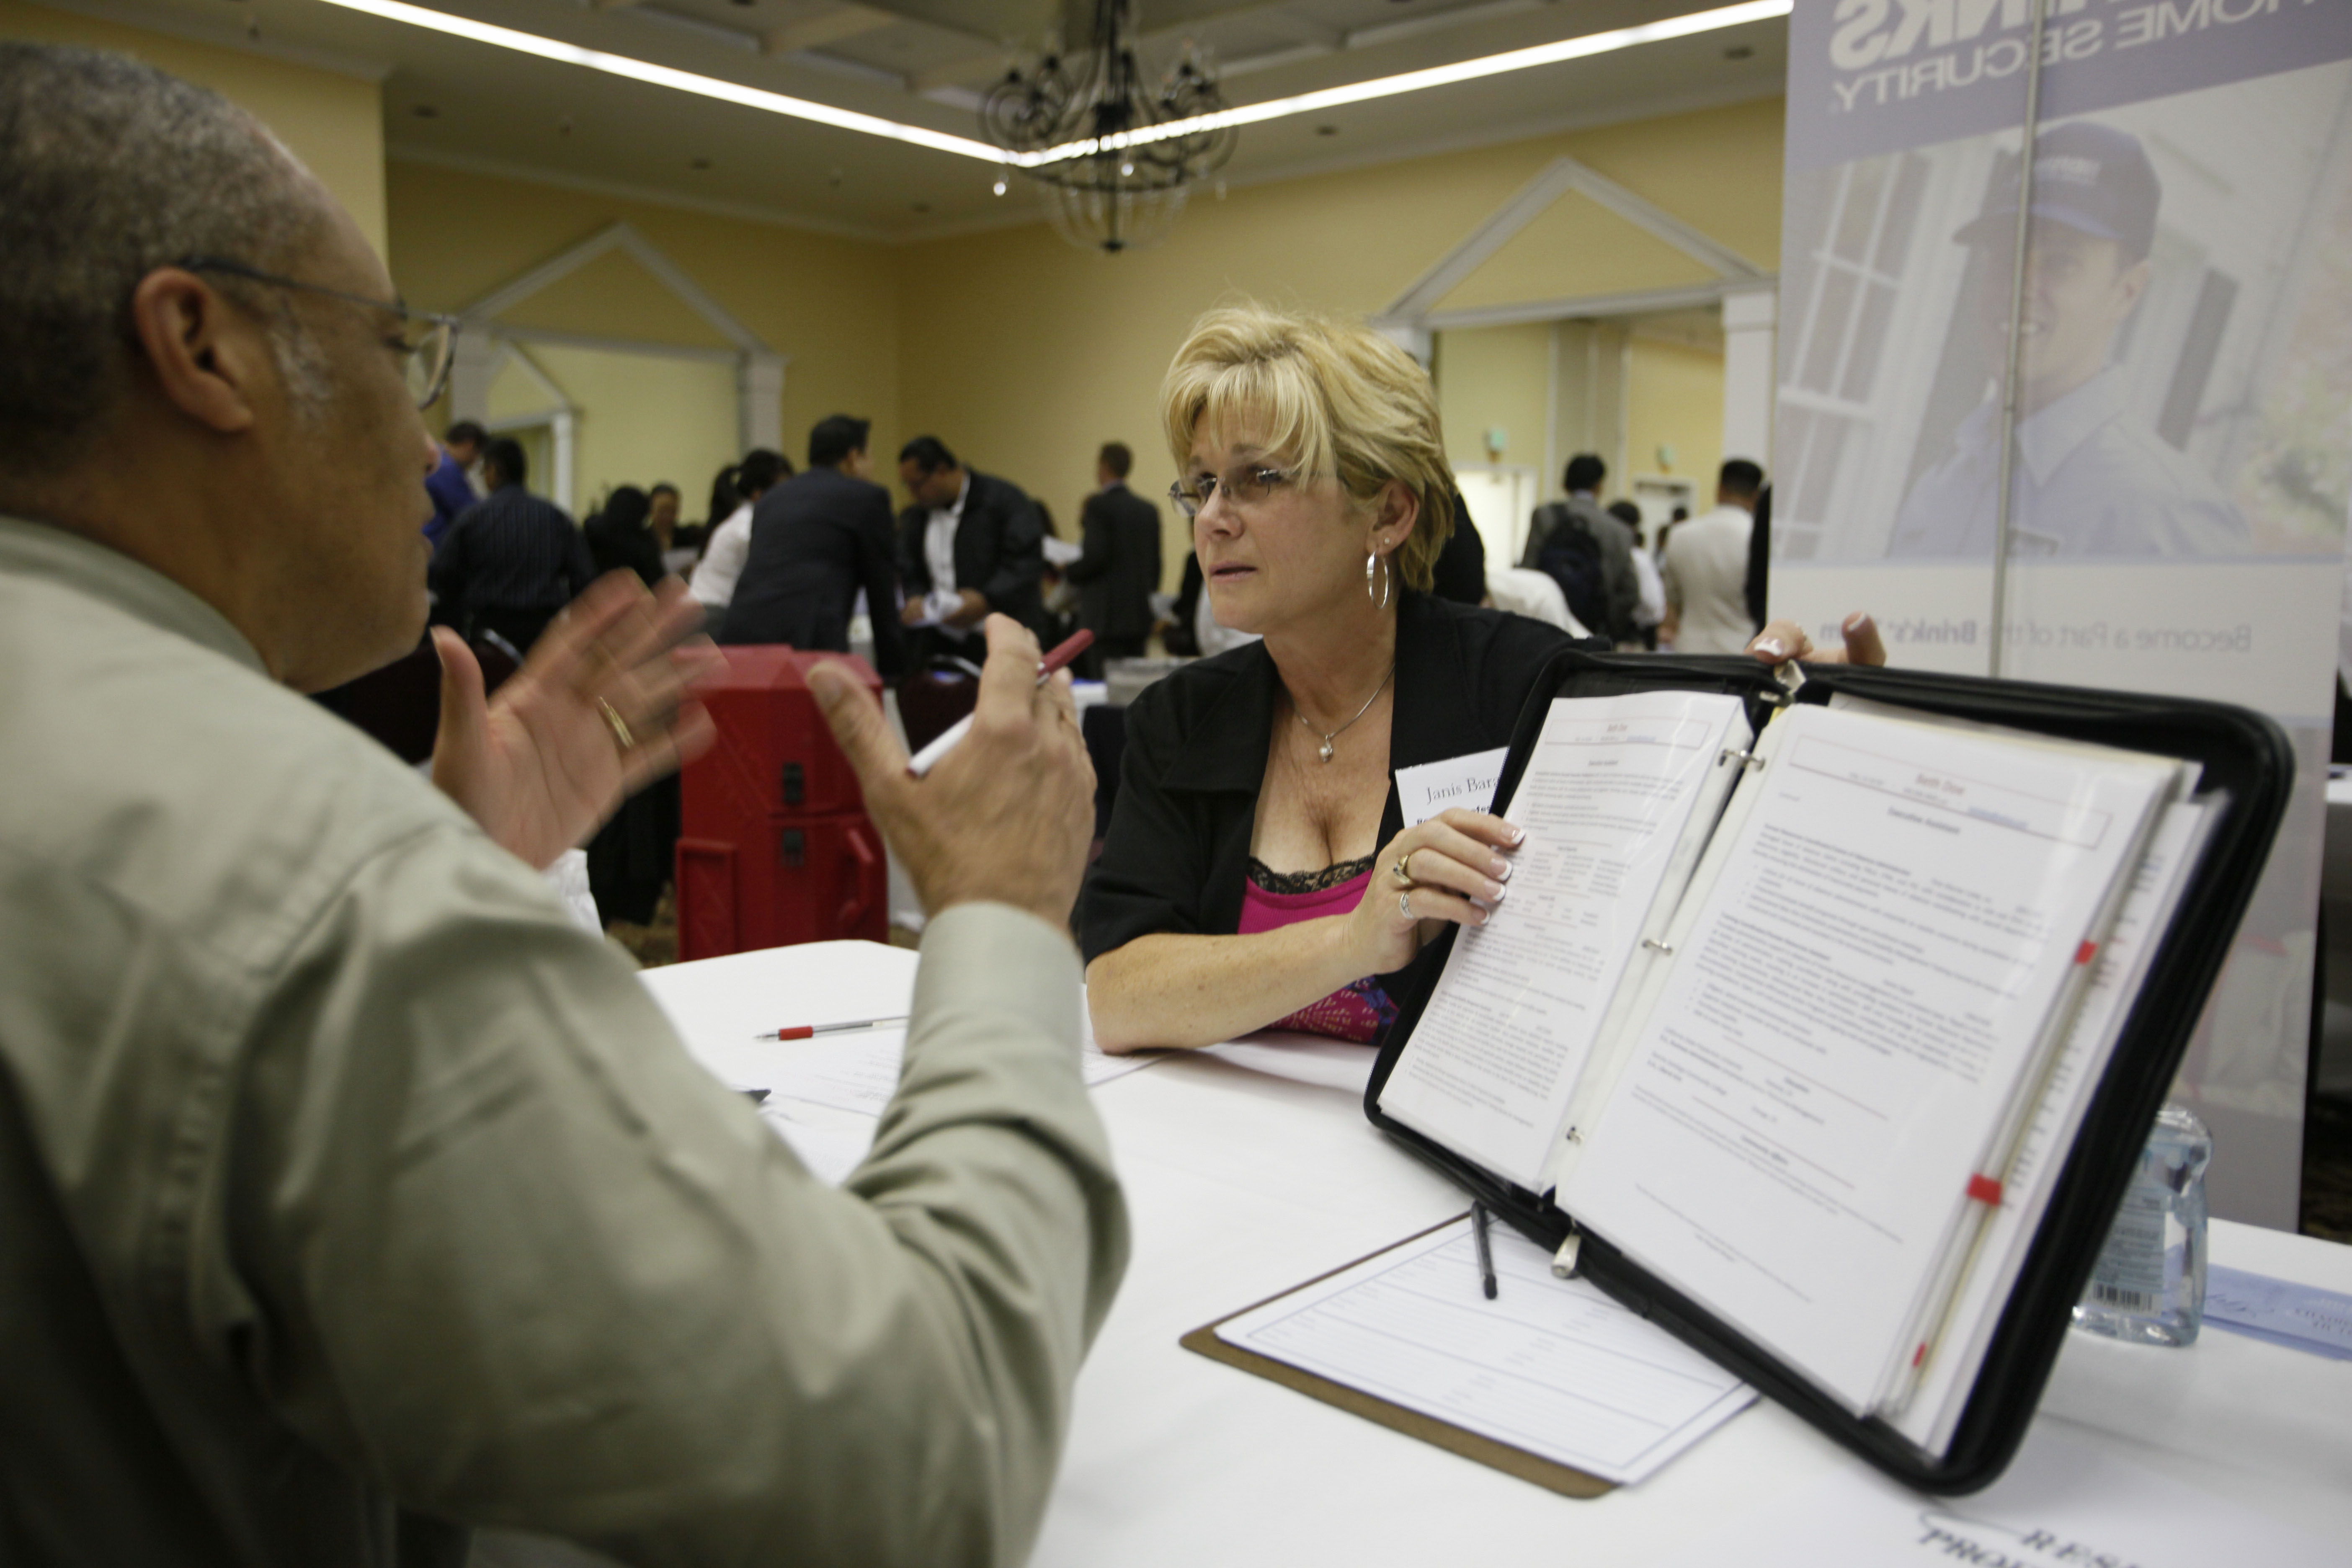 Stafford Muller, left, of Fremont, California, gets help with his resume from Janis Barat, right, of Resume Professionals at a career fair put on by N...